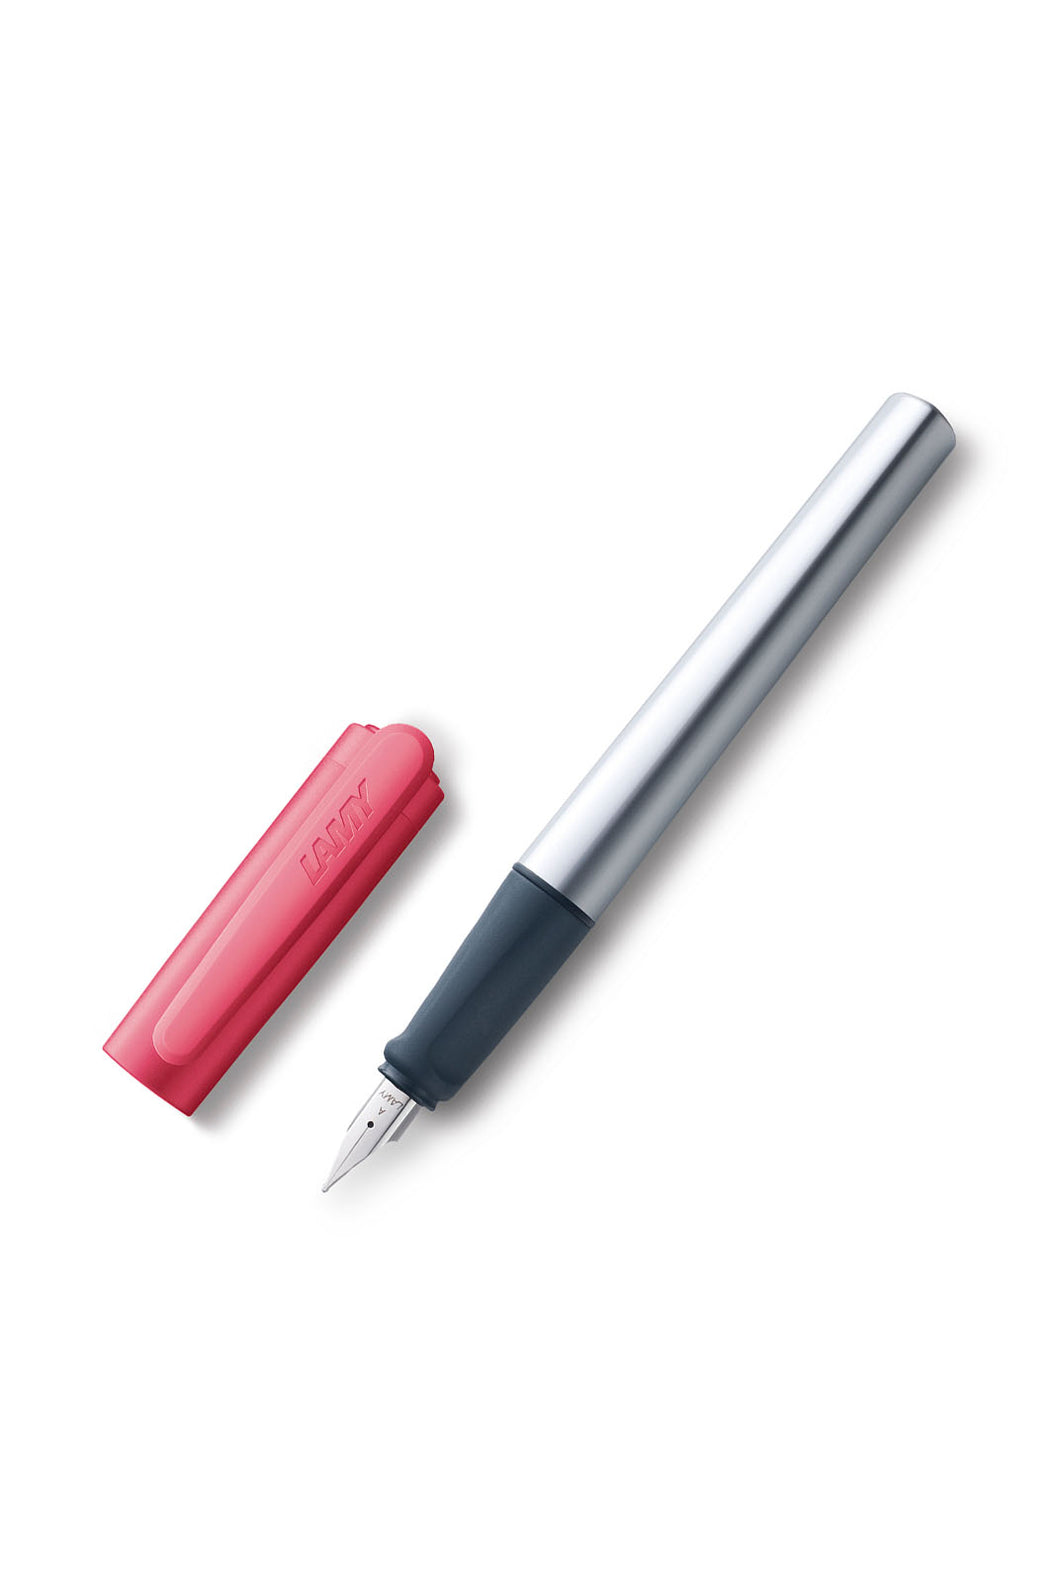 LAMY - Nexx Fountain Pen - Fine - Pink